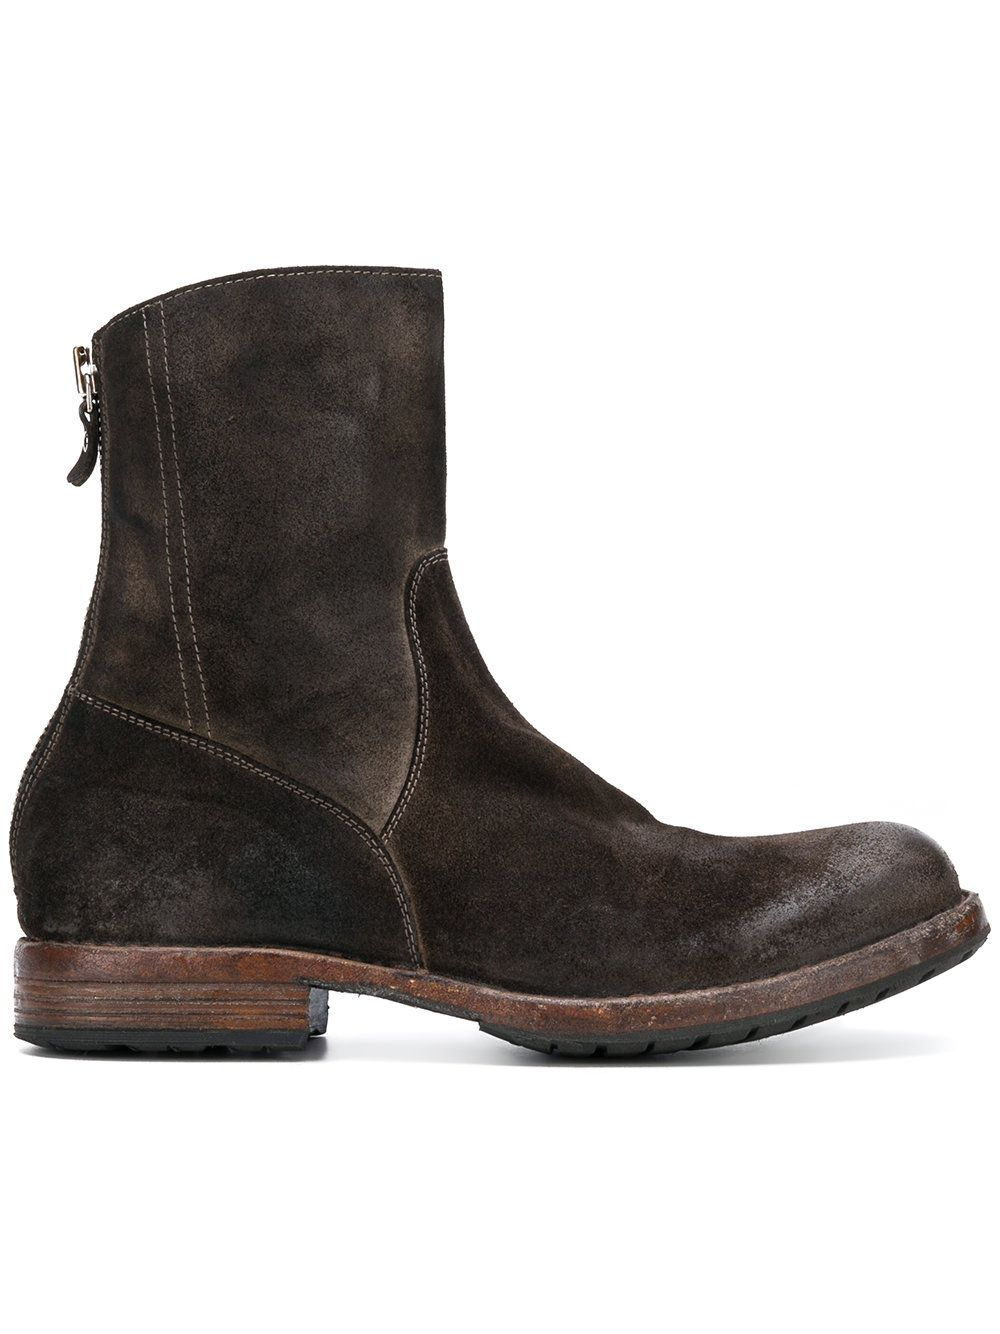 7cc89aa051c1d Moma Rear-zip ankle boots   Shoes   Boots, Ankle boots, Ankle